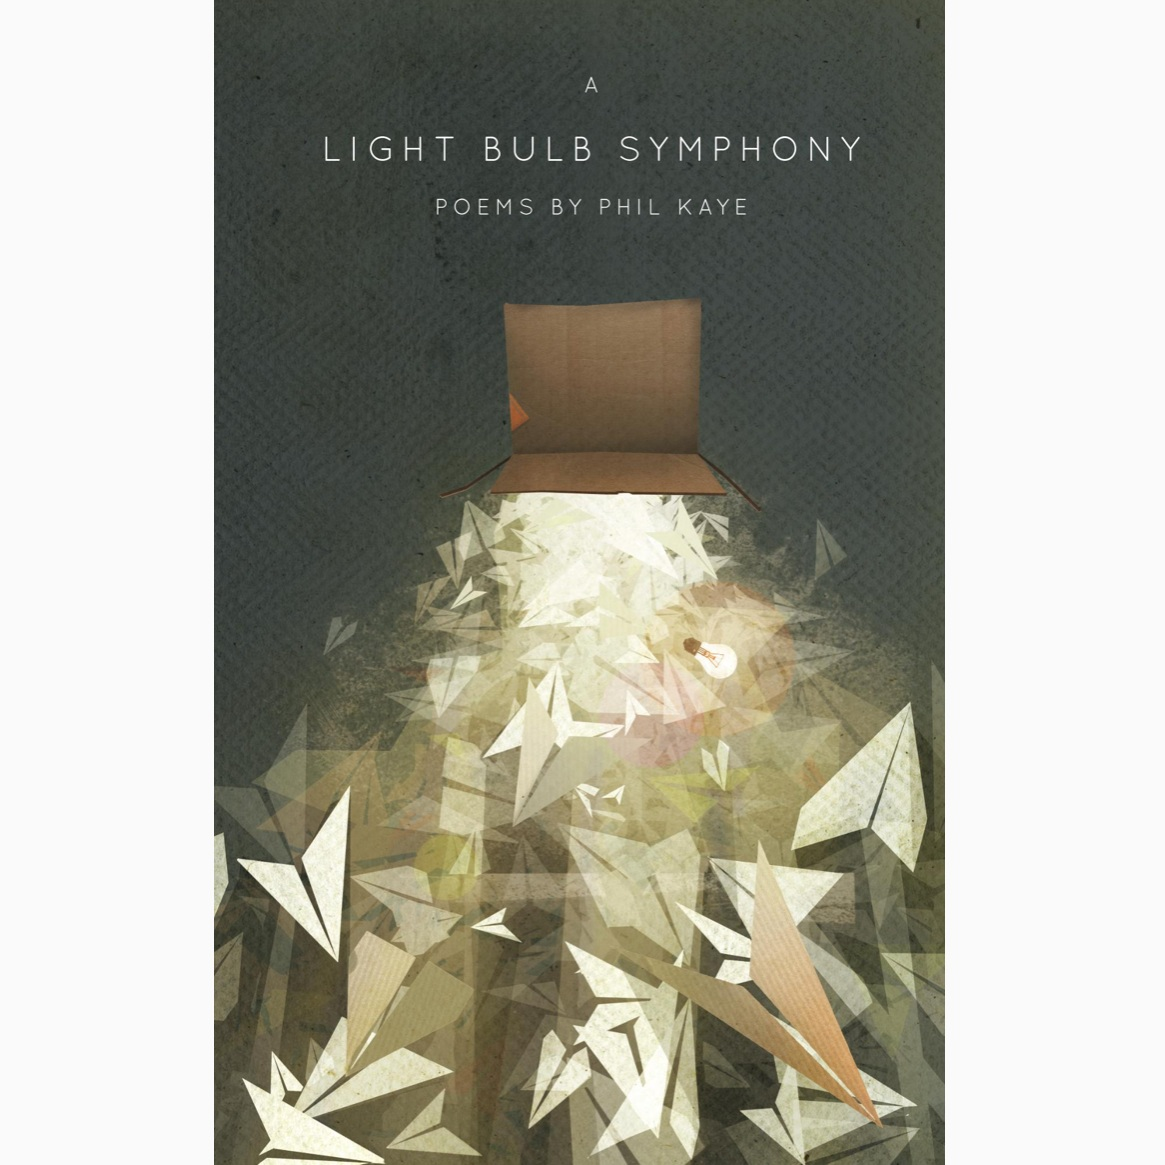 A Light Bulb Symphony  - Phil Kaye    Learn more and purchase